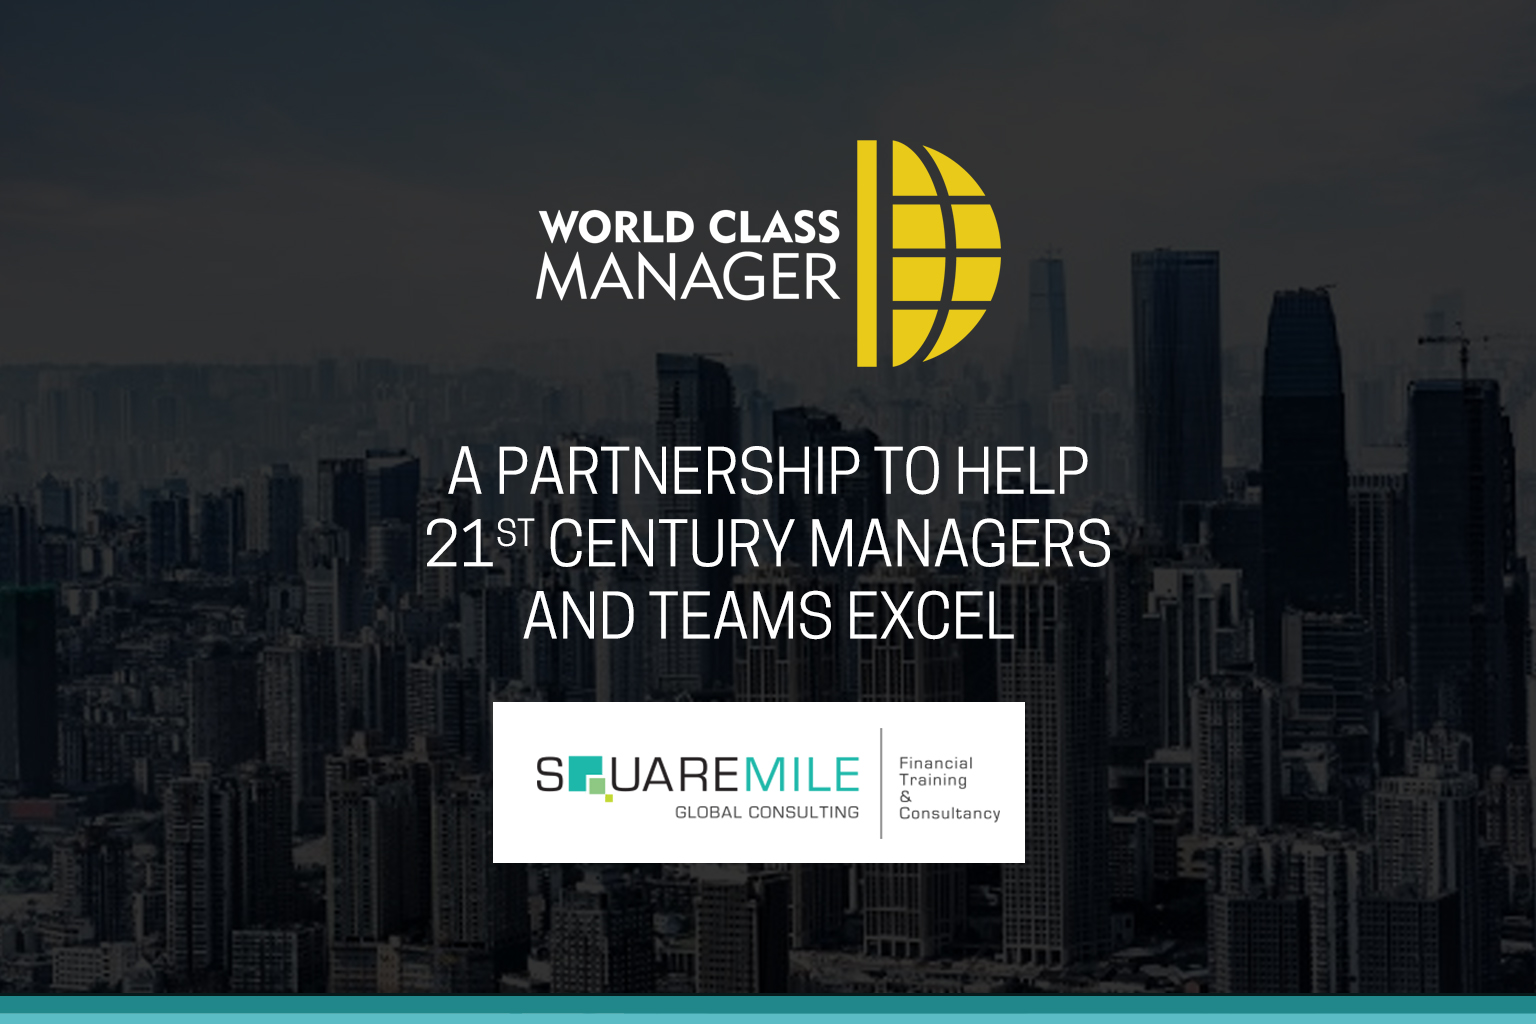 World Class Manager celebrates partnership with Square Mile Global Consulting